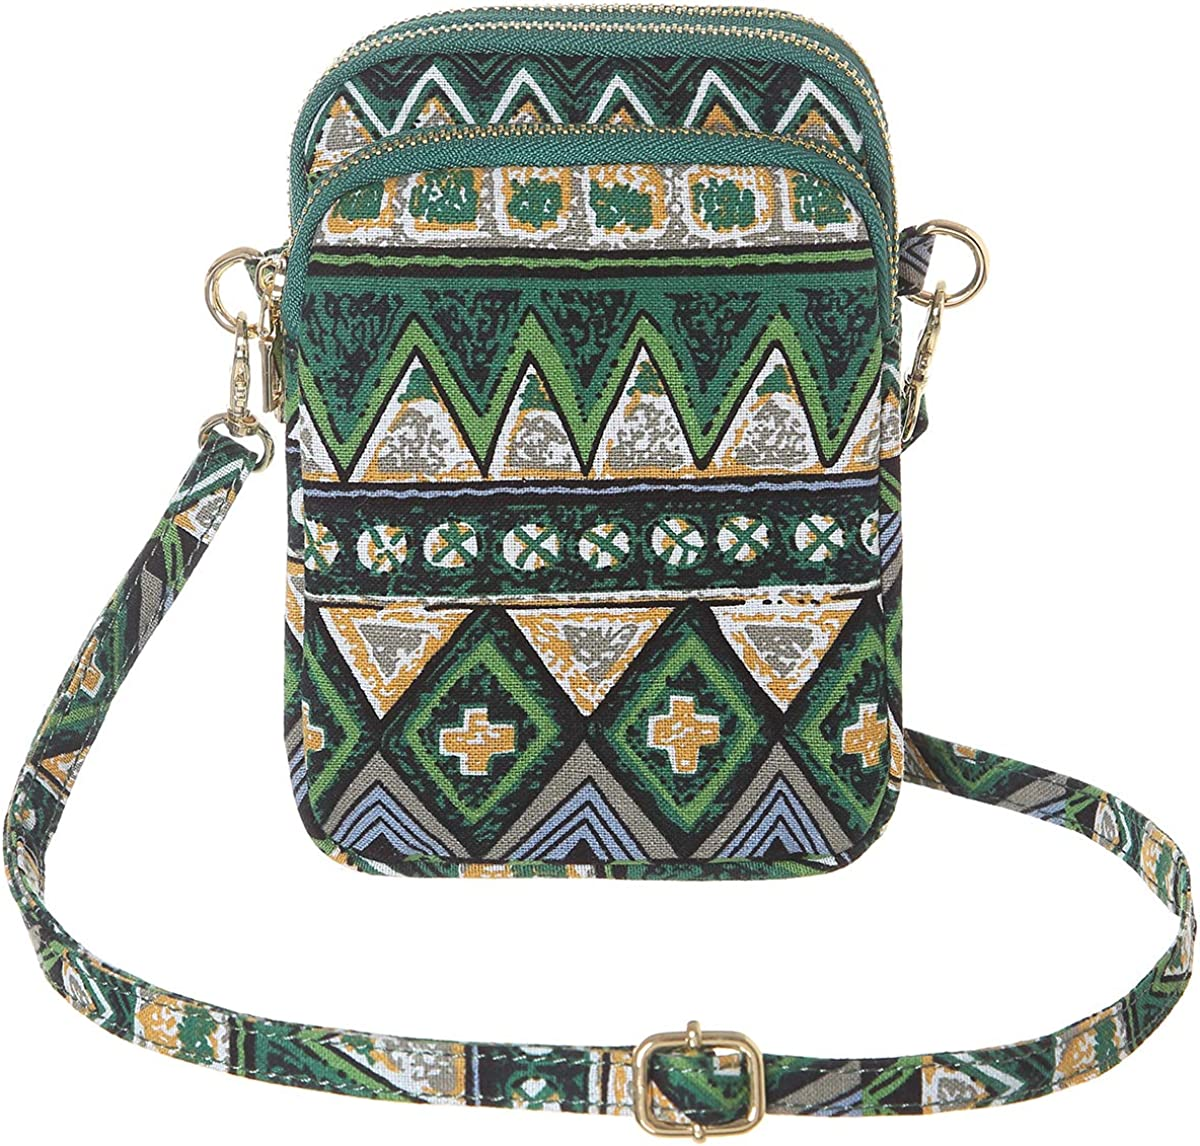 HAIDEXI Lightweight Small Crossbody bags Purses Cell Trave Phone Max 84% OFF OFFicial site